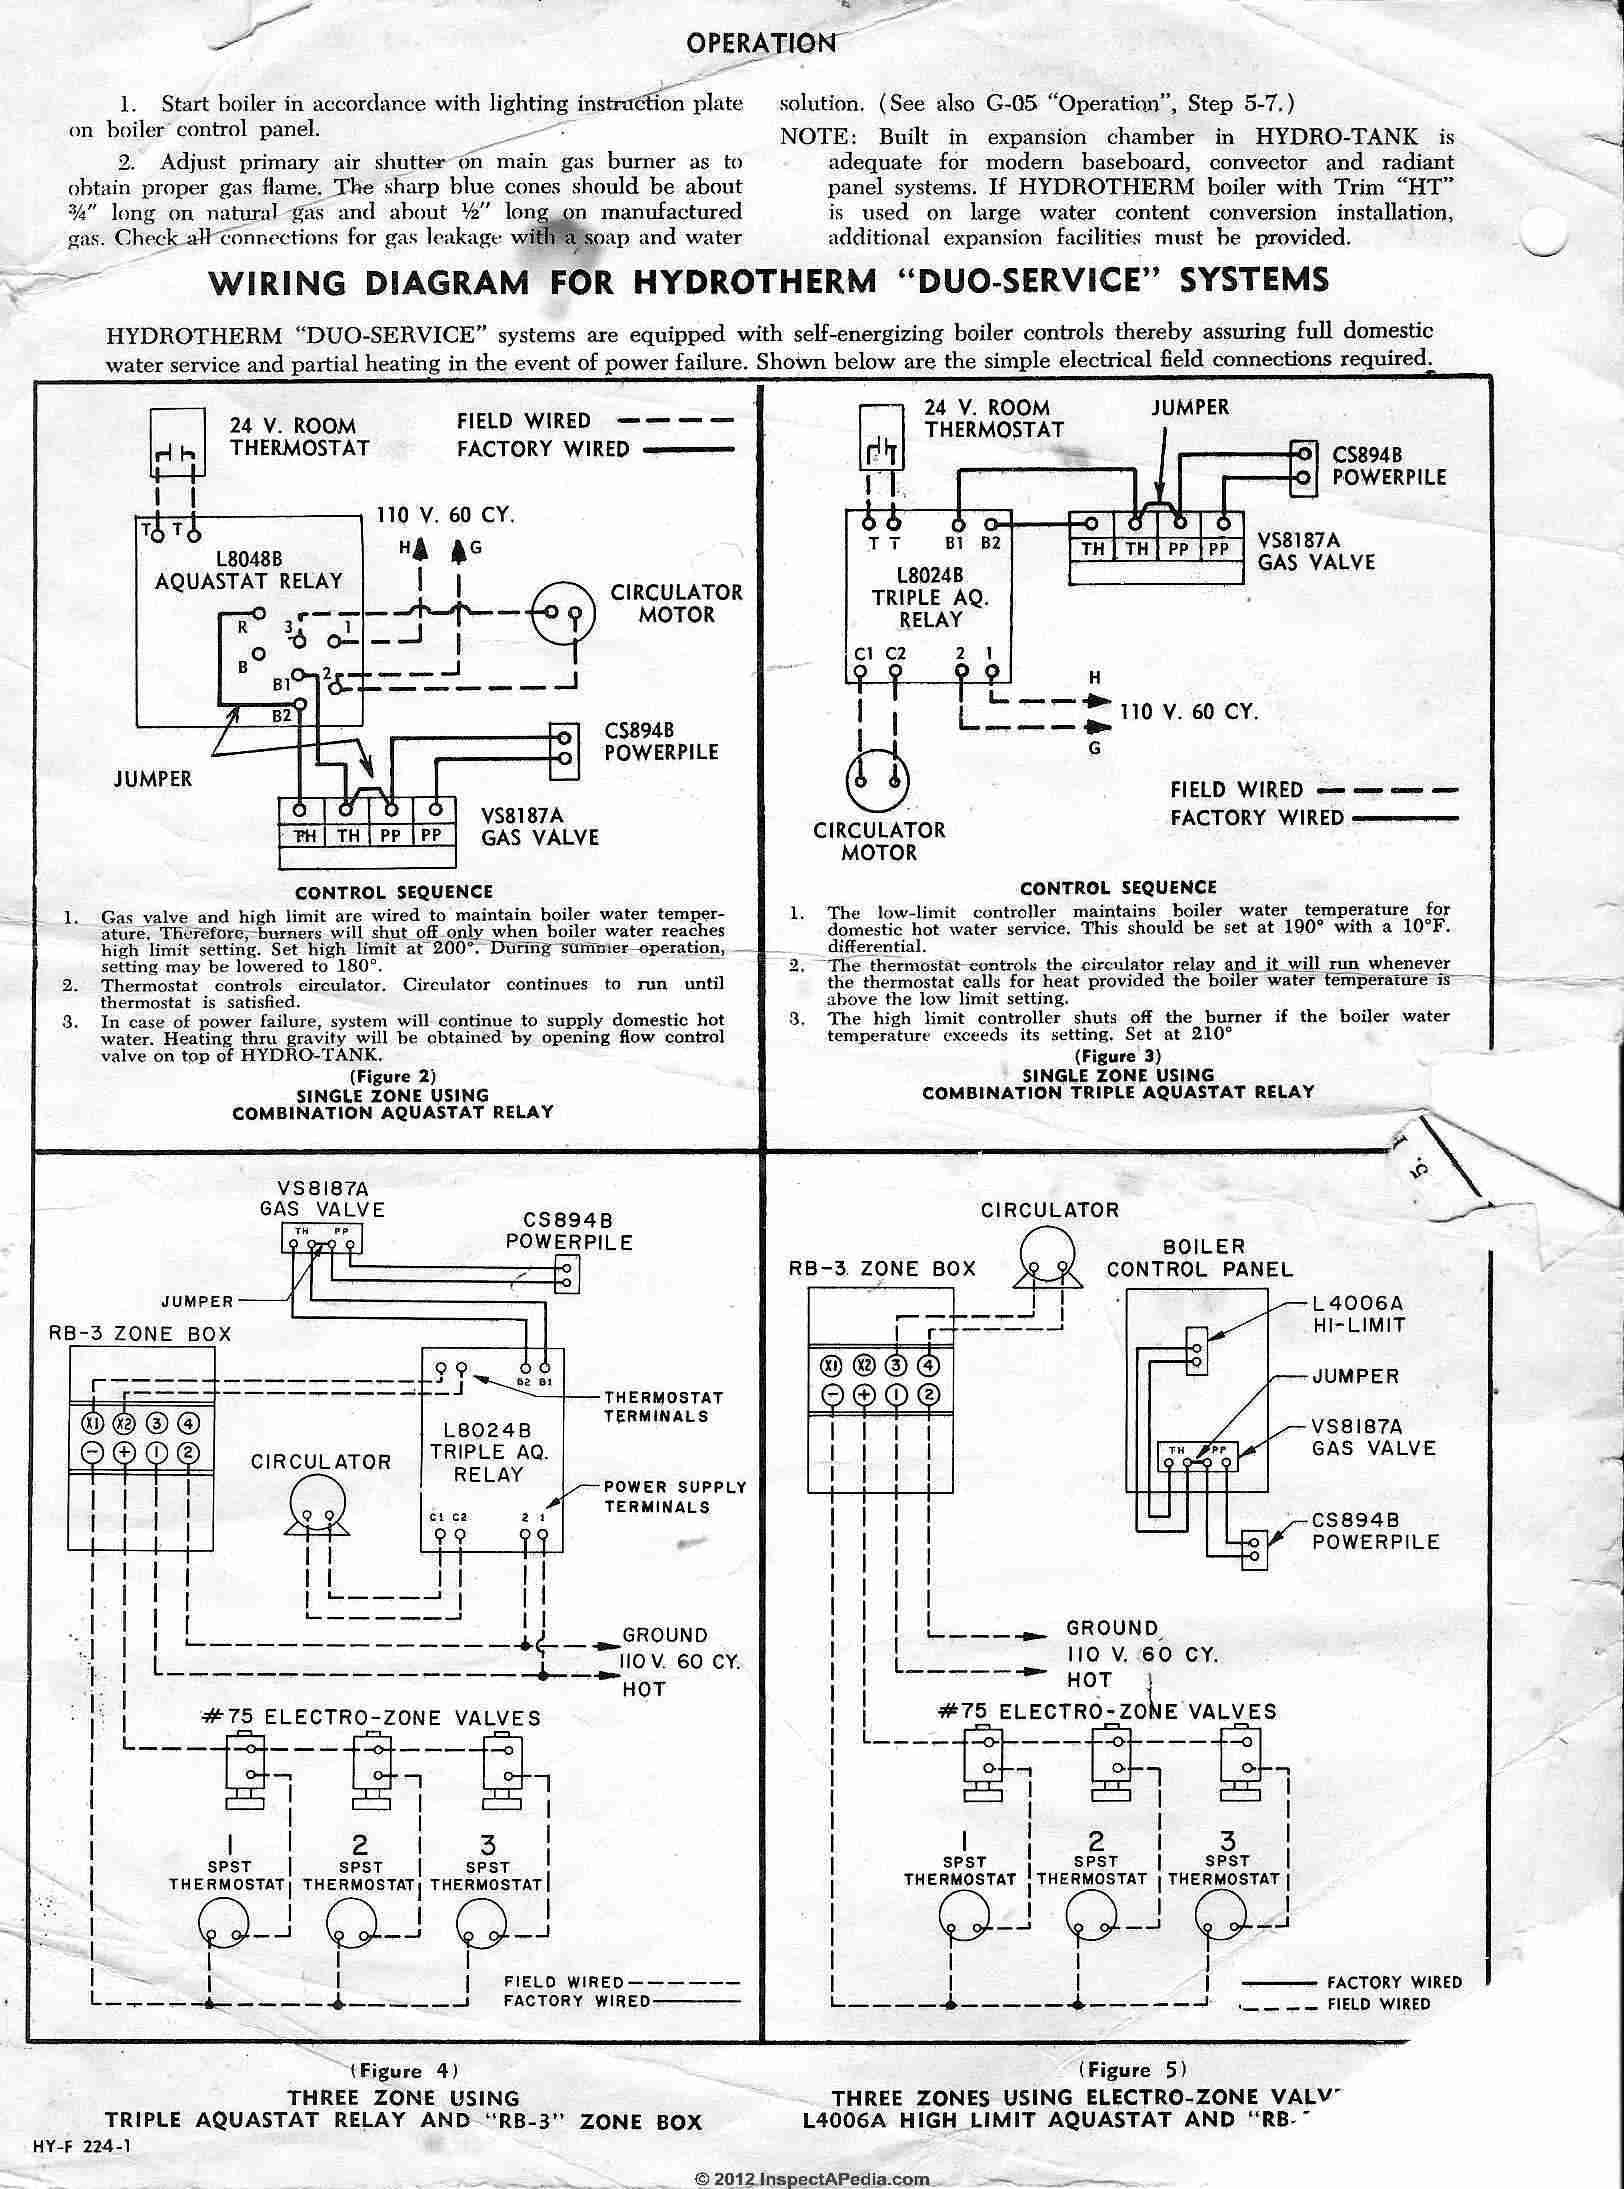 L8024B_Aquastat_0422_DJFcs heating boiler aquastat control diagnosis, troubleshooting, repair honeywell aquastat l6006c wiring diagram at crackthecode.co